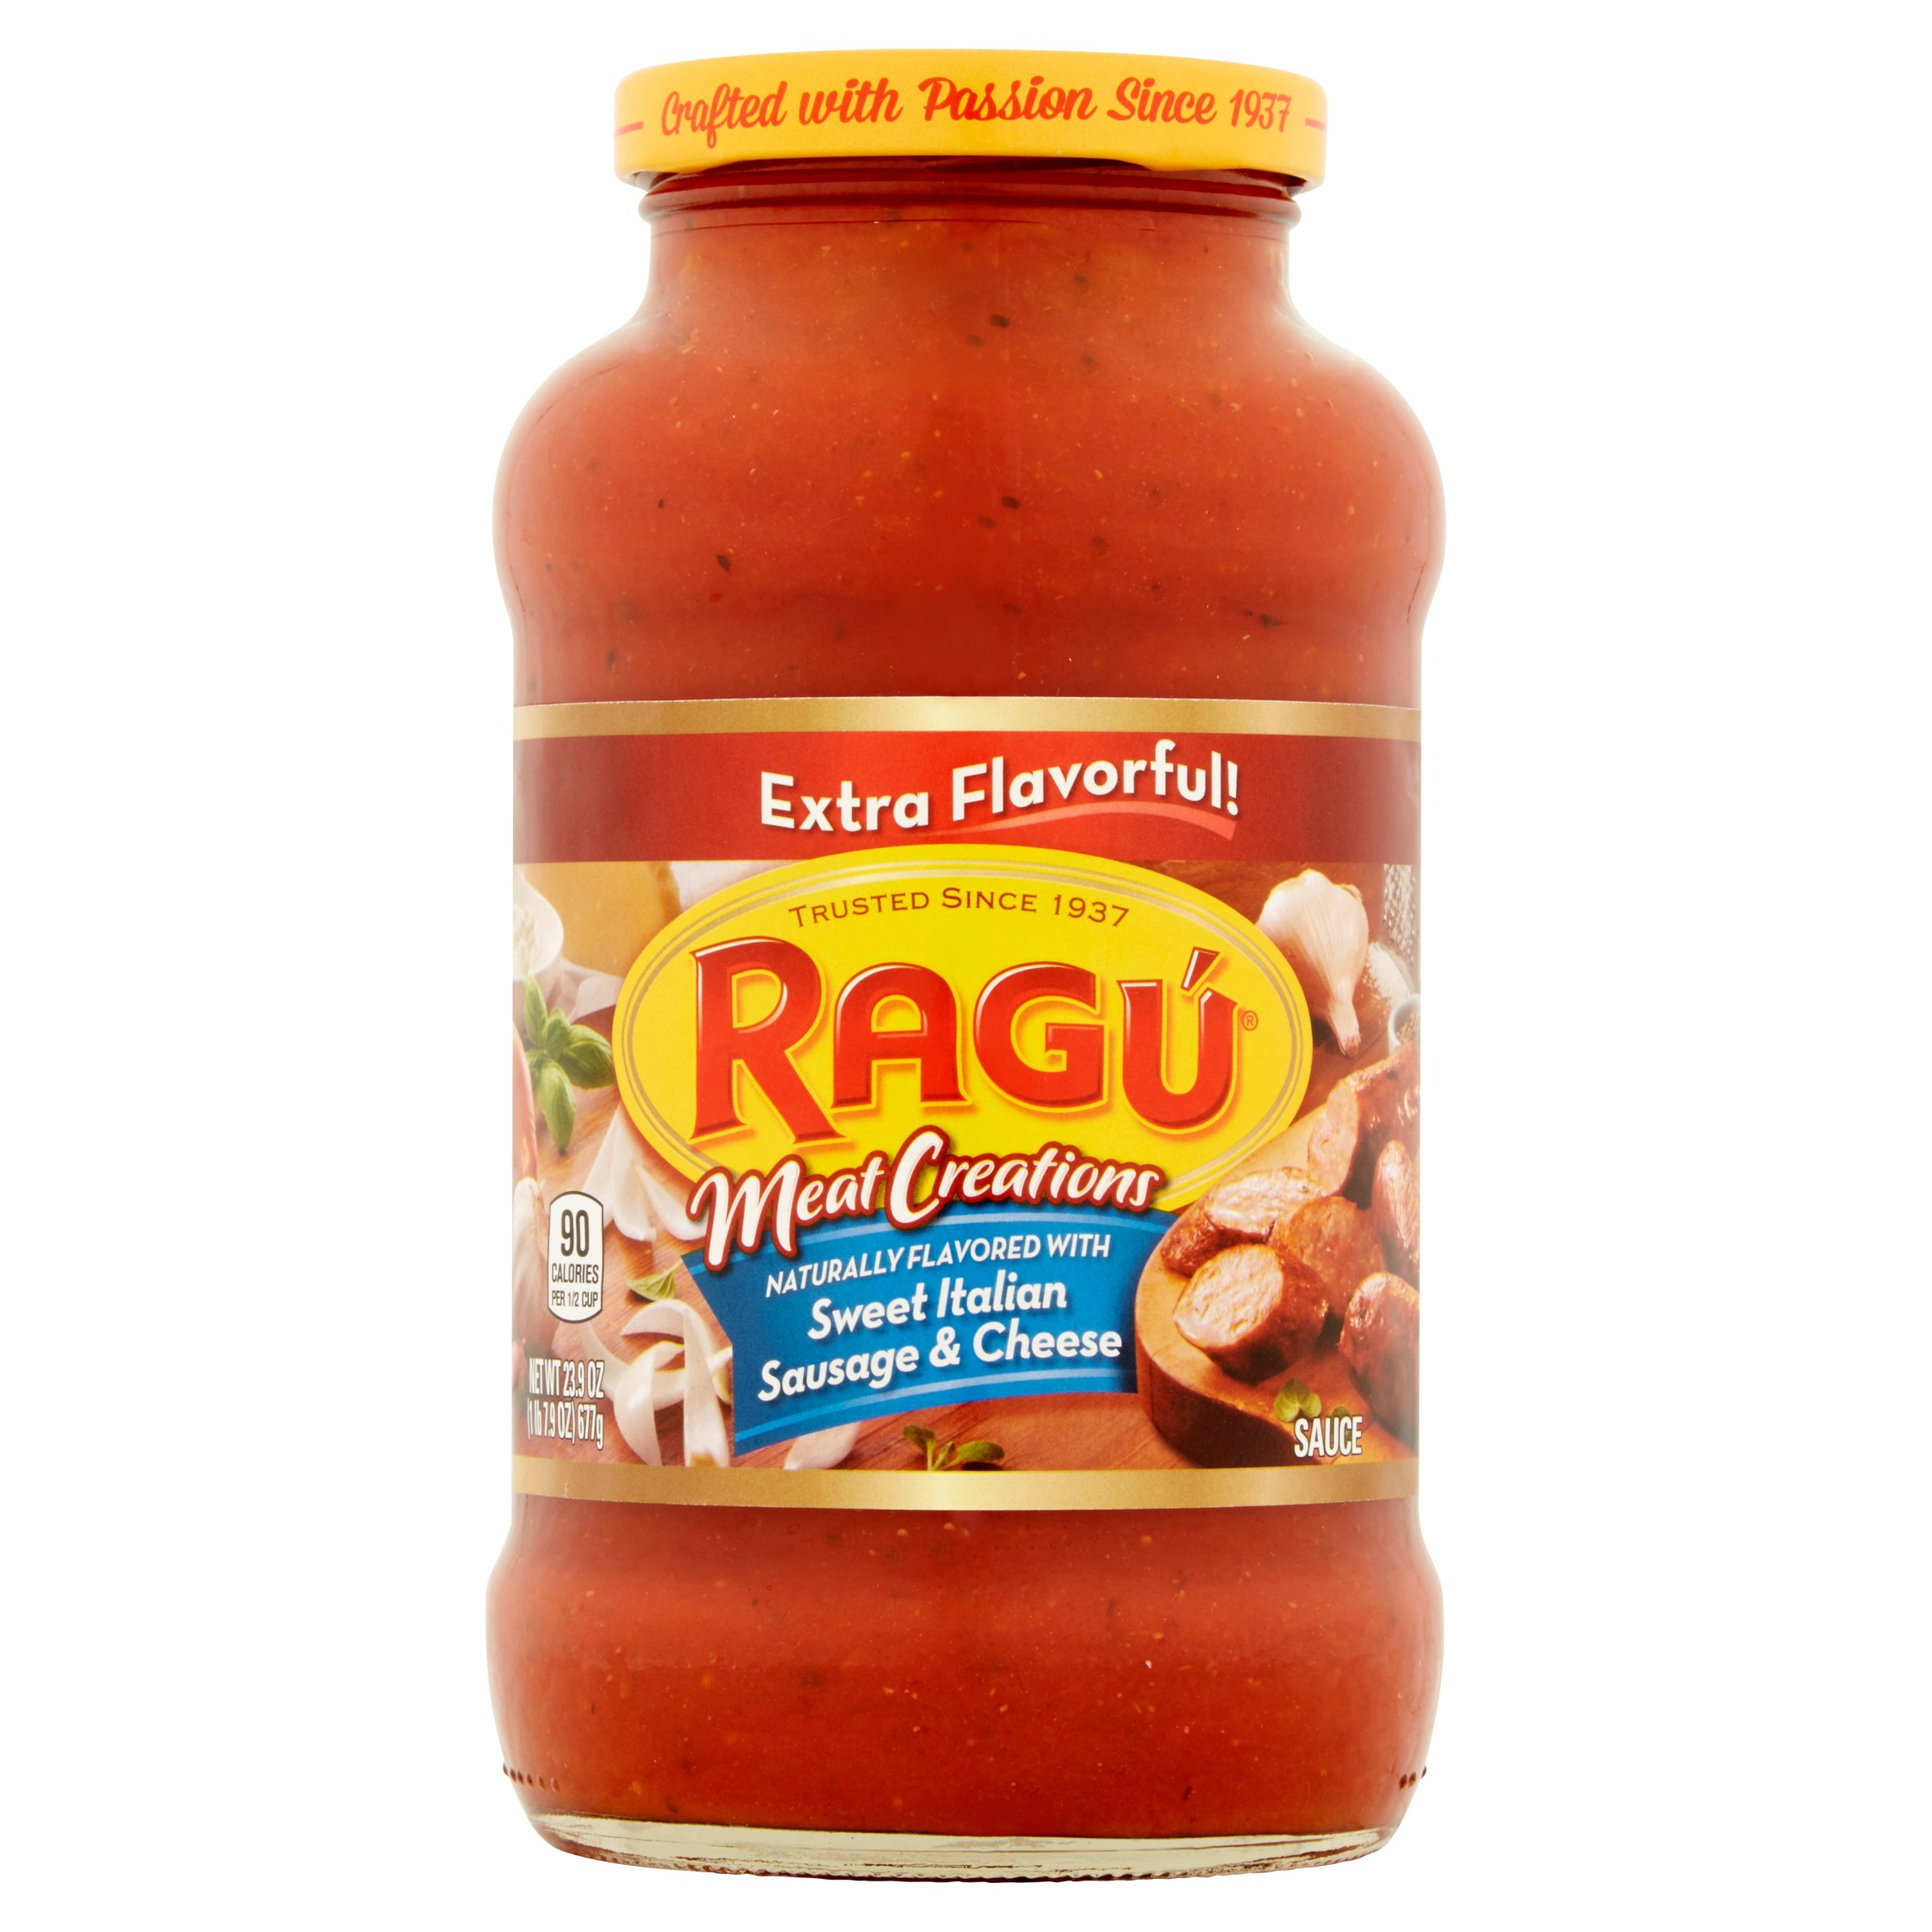 Ragú Meat Creations Sweet Italian Sausage & Cheese Pasta Sauce 24 oz.